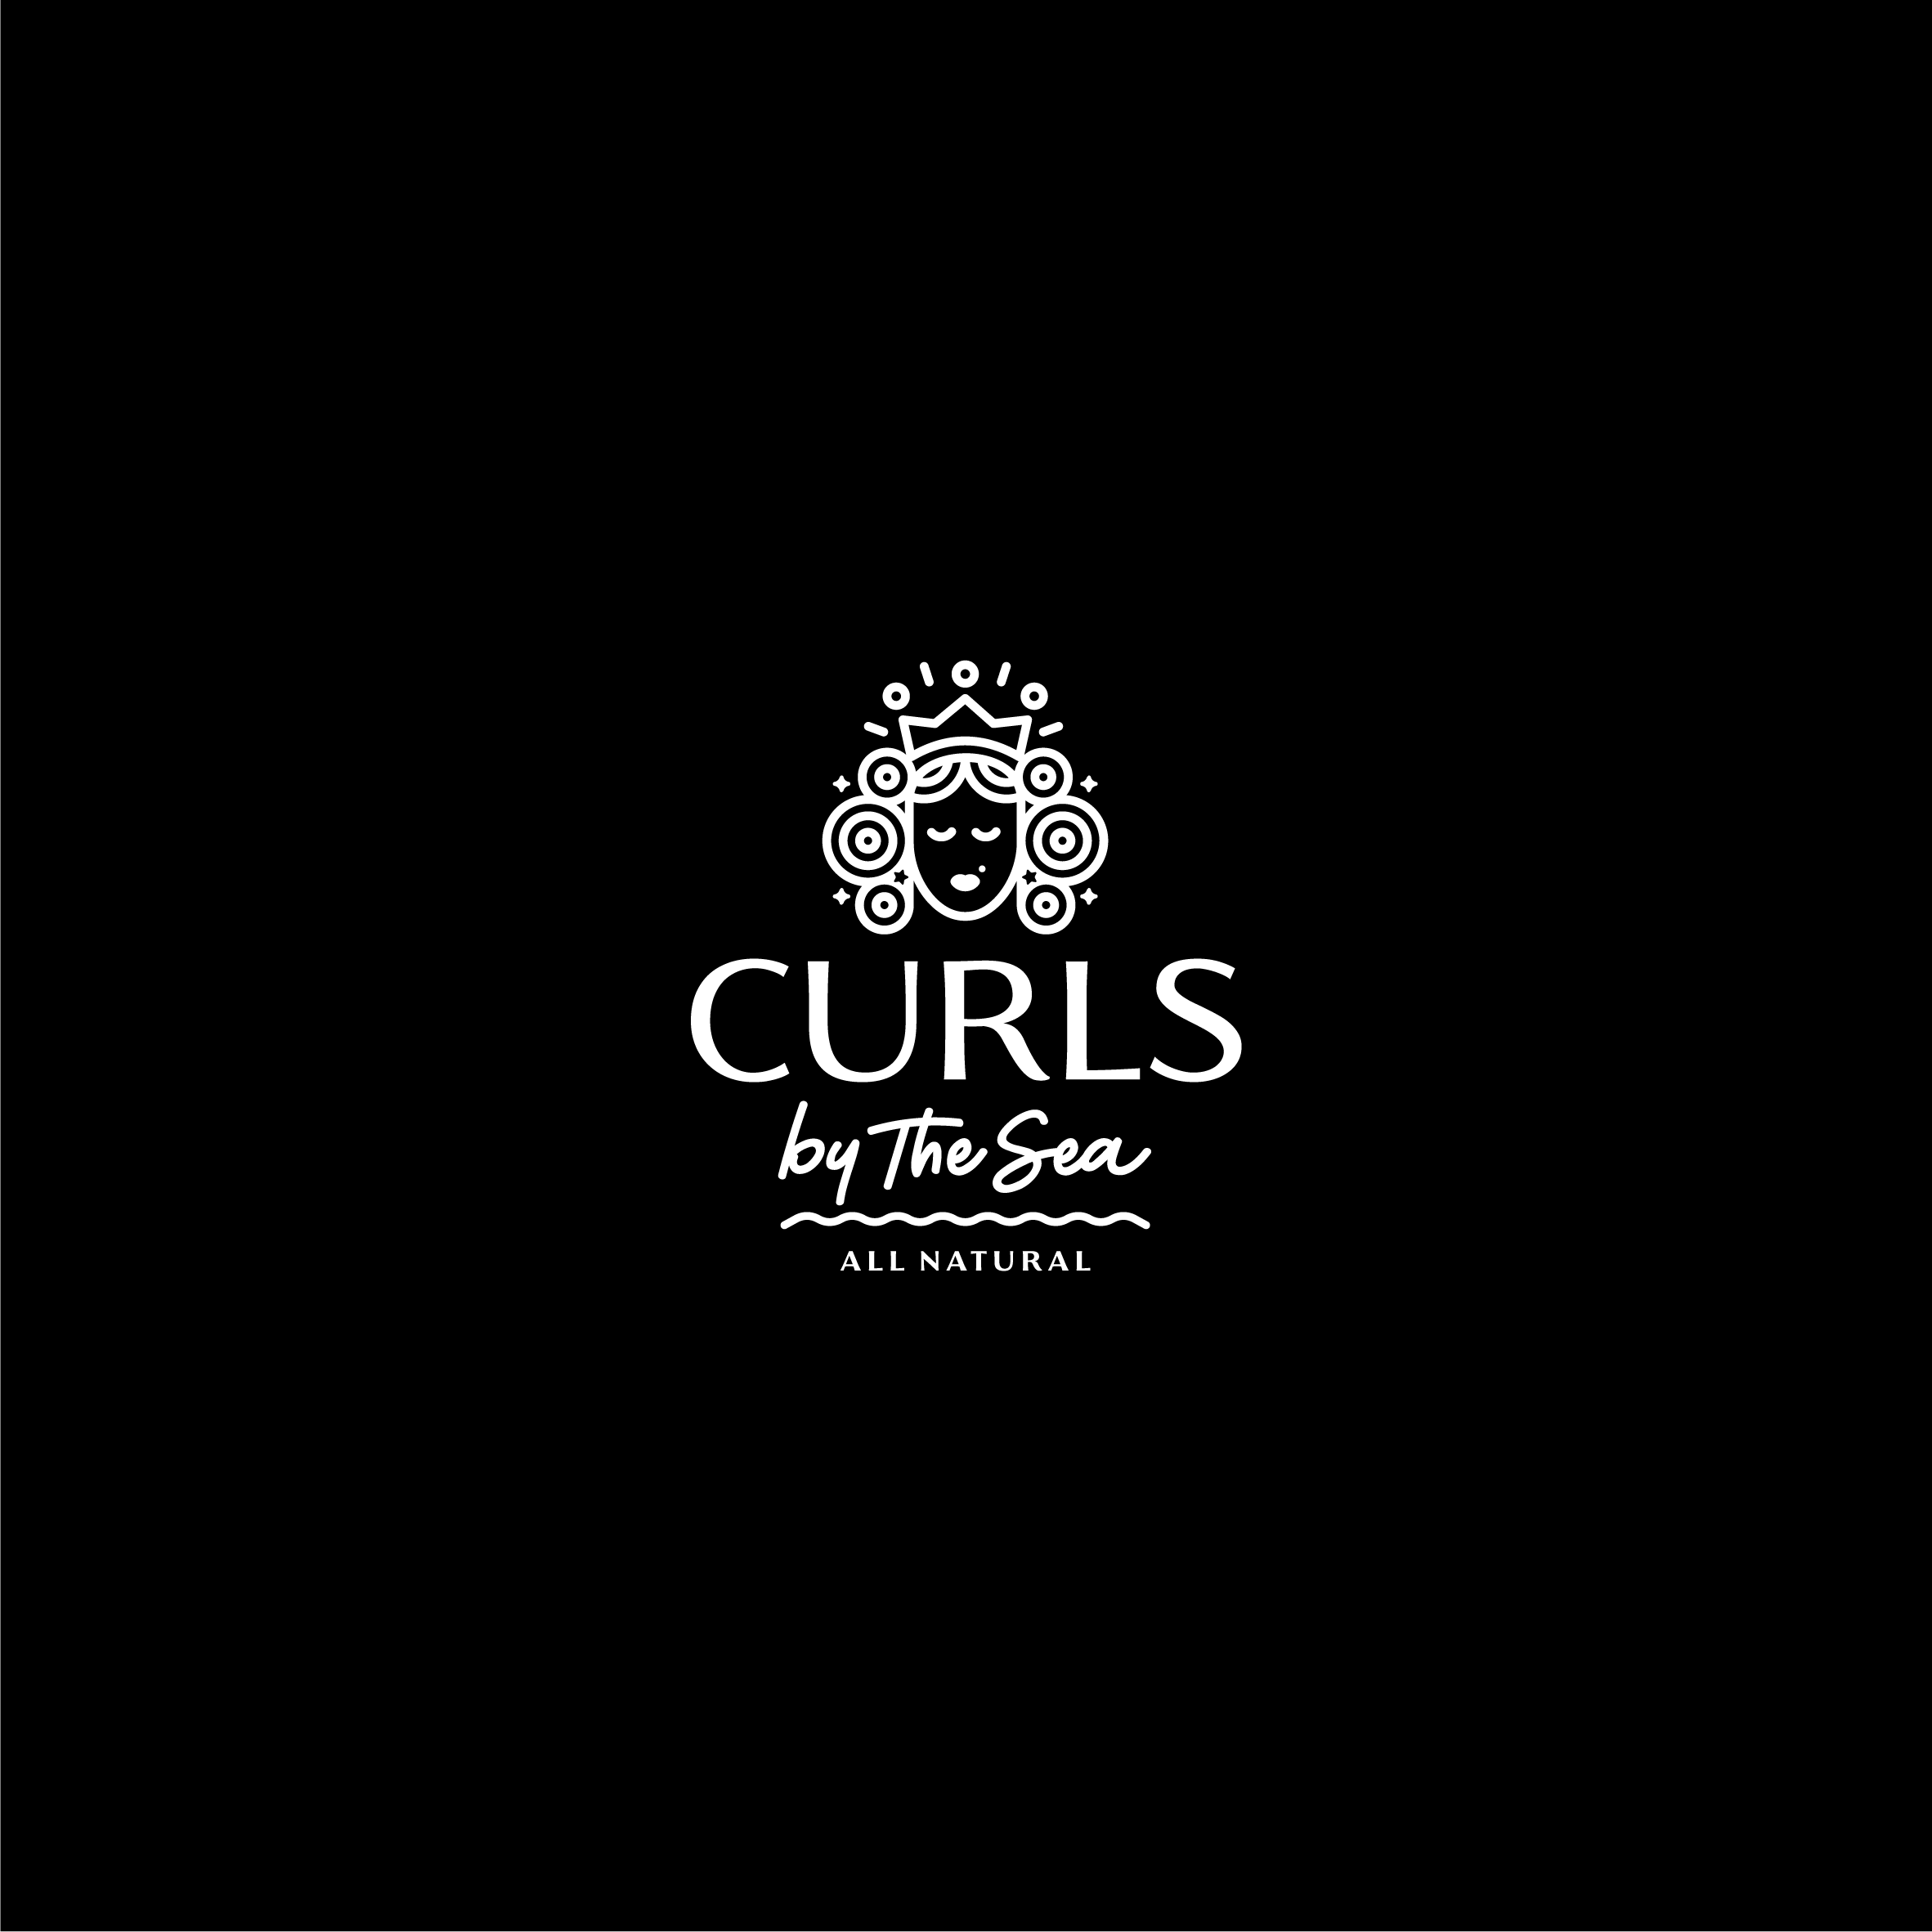 """Design the Brand Identity for an all Natural Haircare: """"Curls by the Sea"""""""